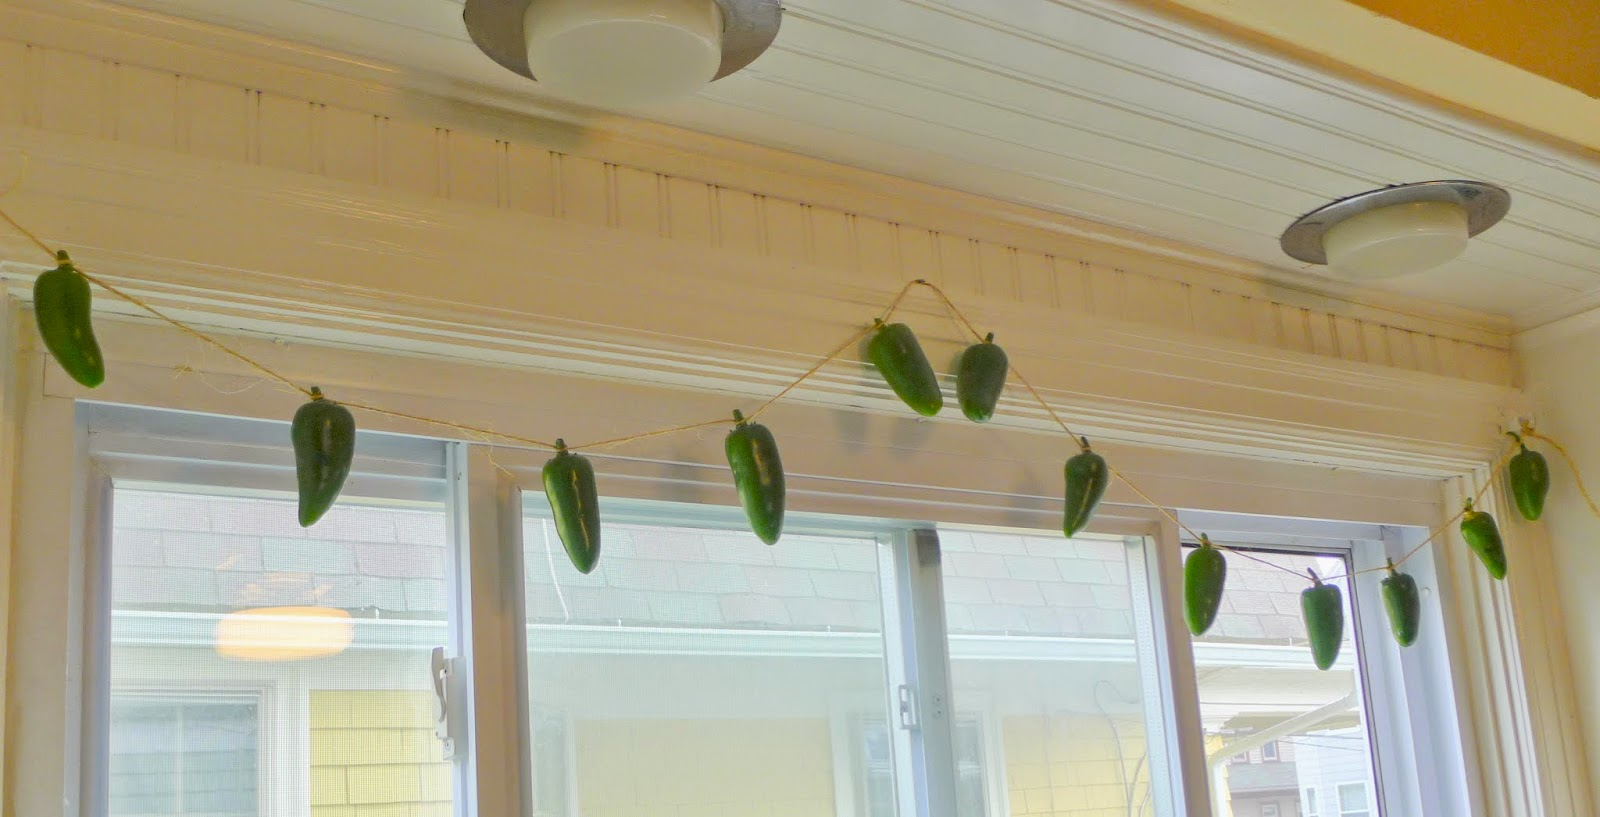 Air Drying Jalapeno Peppers,preserving